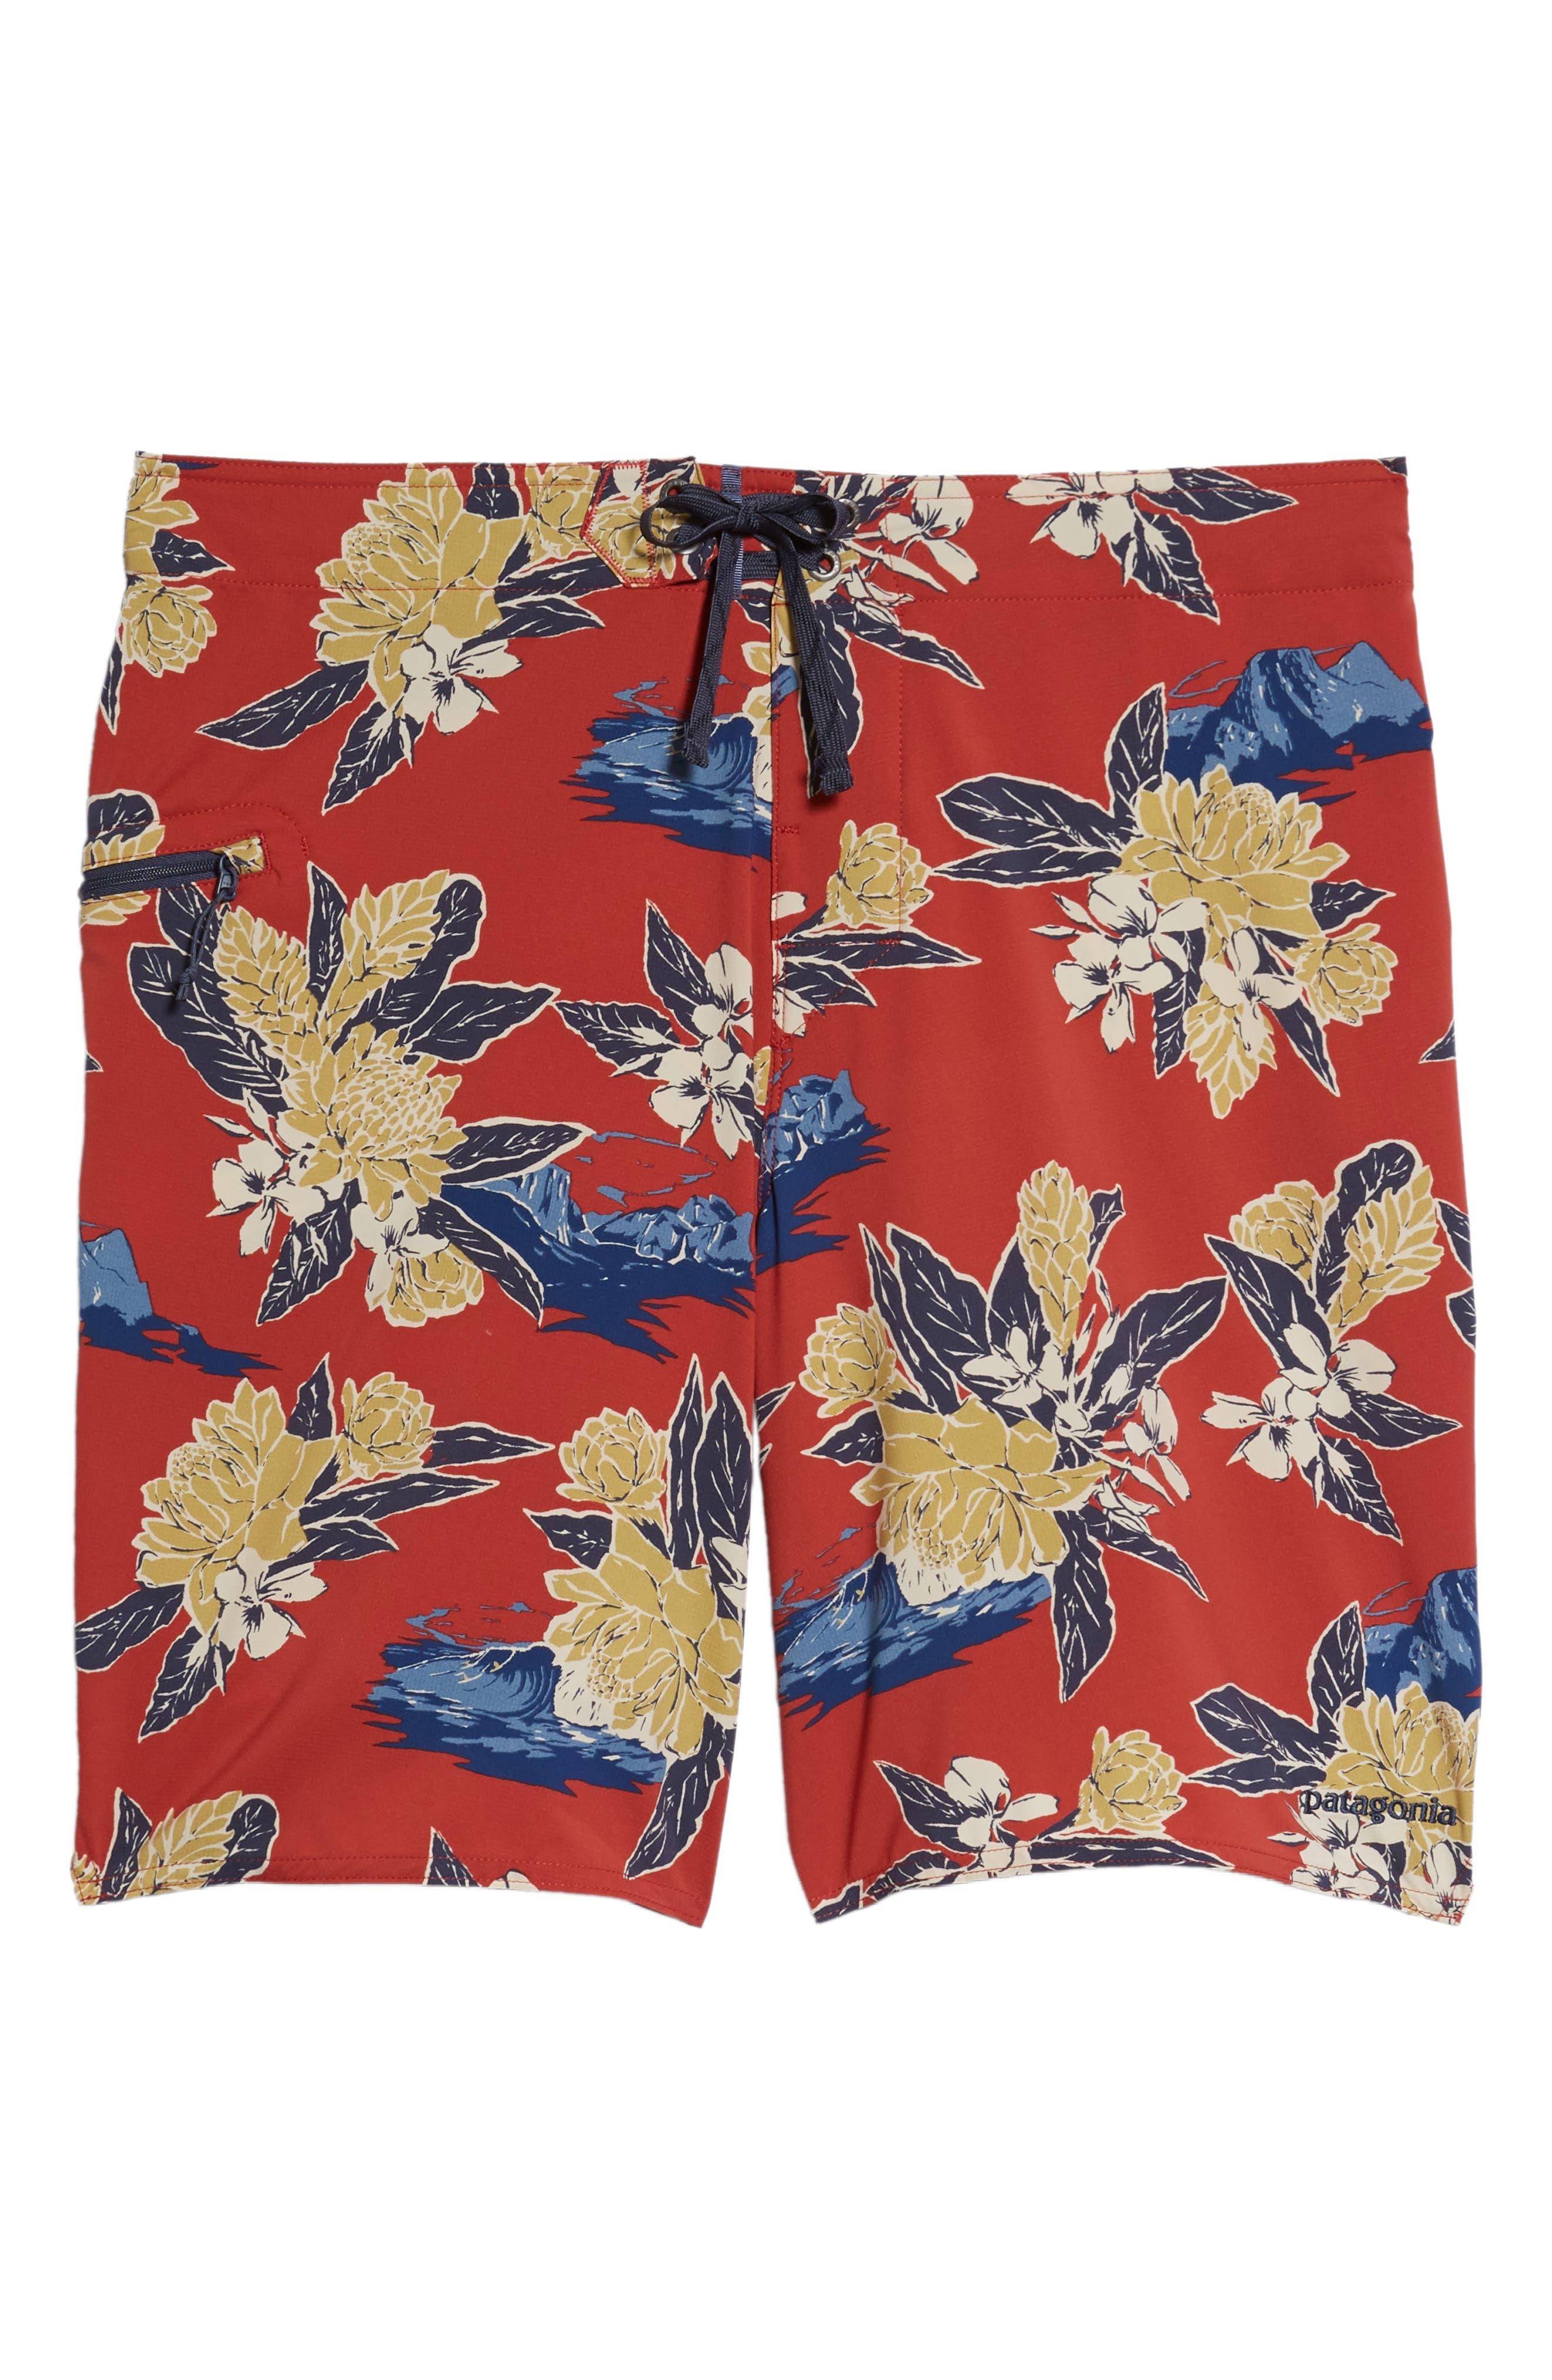 Stretch Planing Board Shorts,                             Alternate thumbnail 6, color,                             603